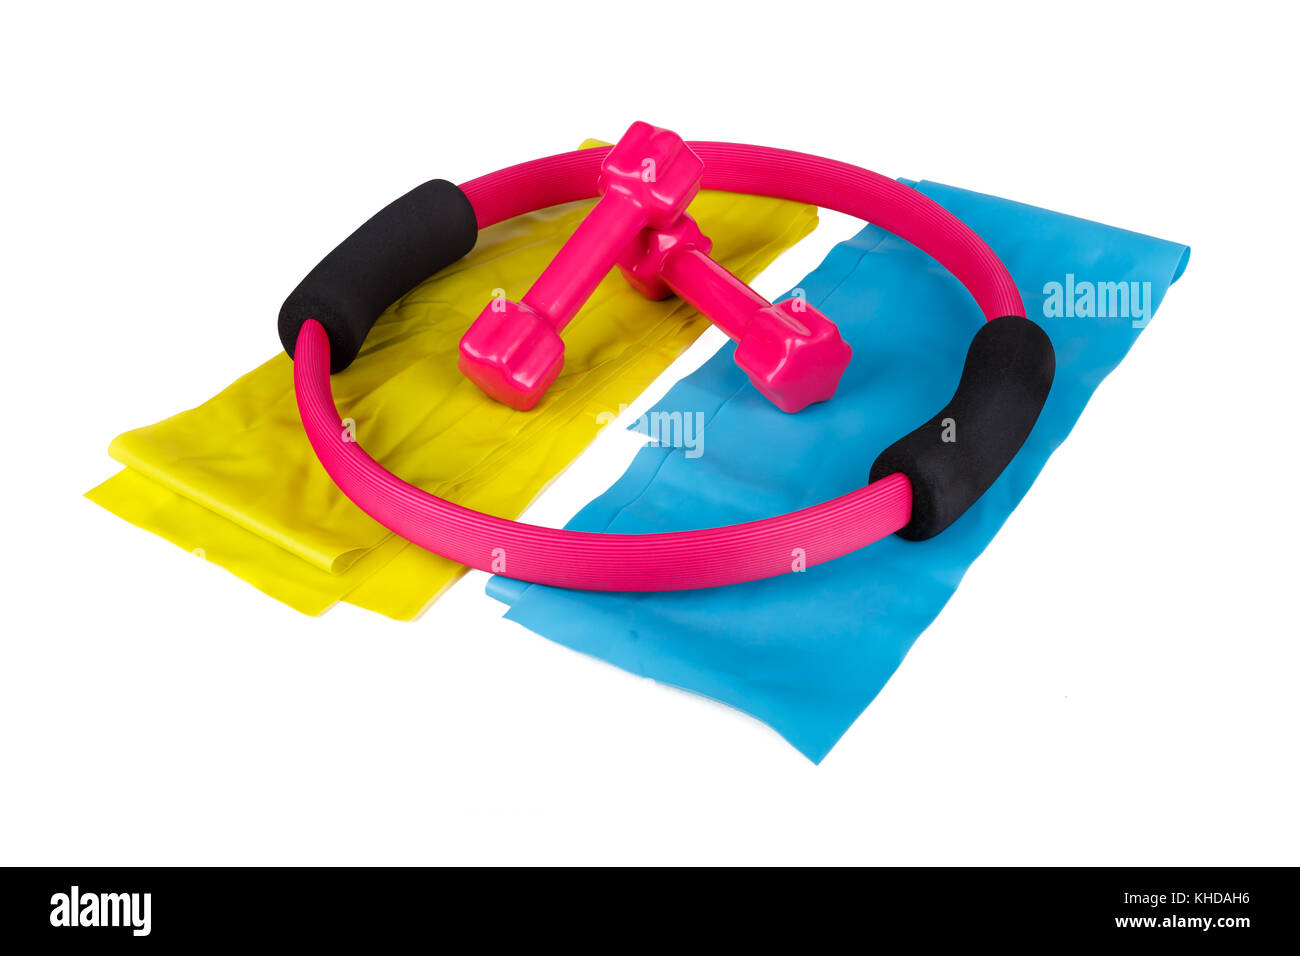 Pink dumbbells and rubber band, pilates circle healthy life and sport concept, isolated on white background. - Stock Image